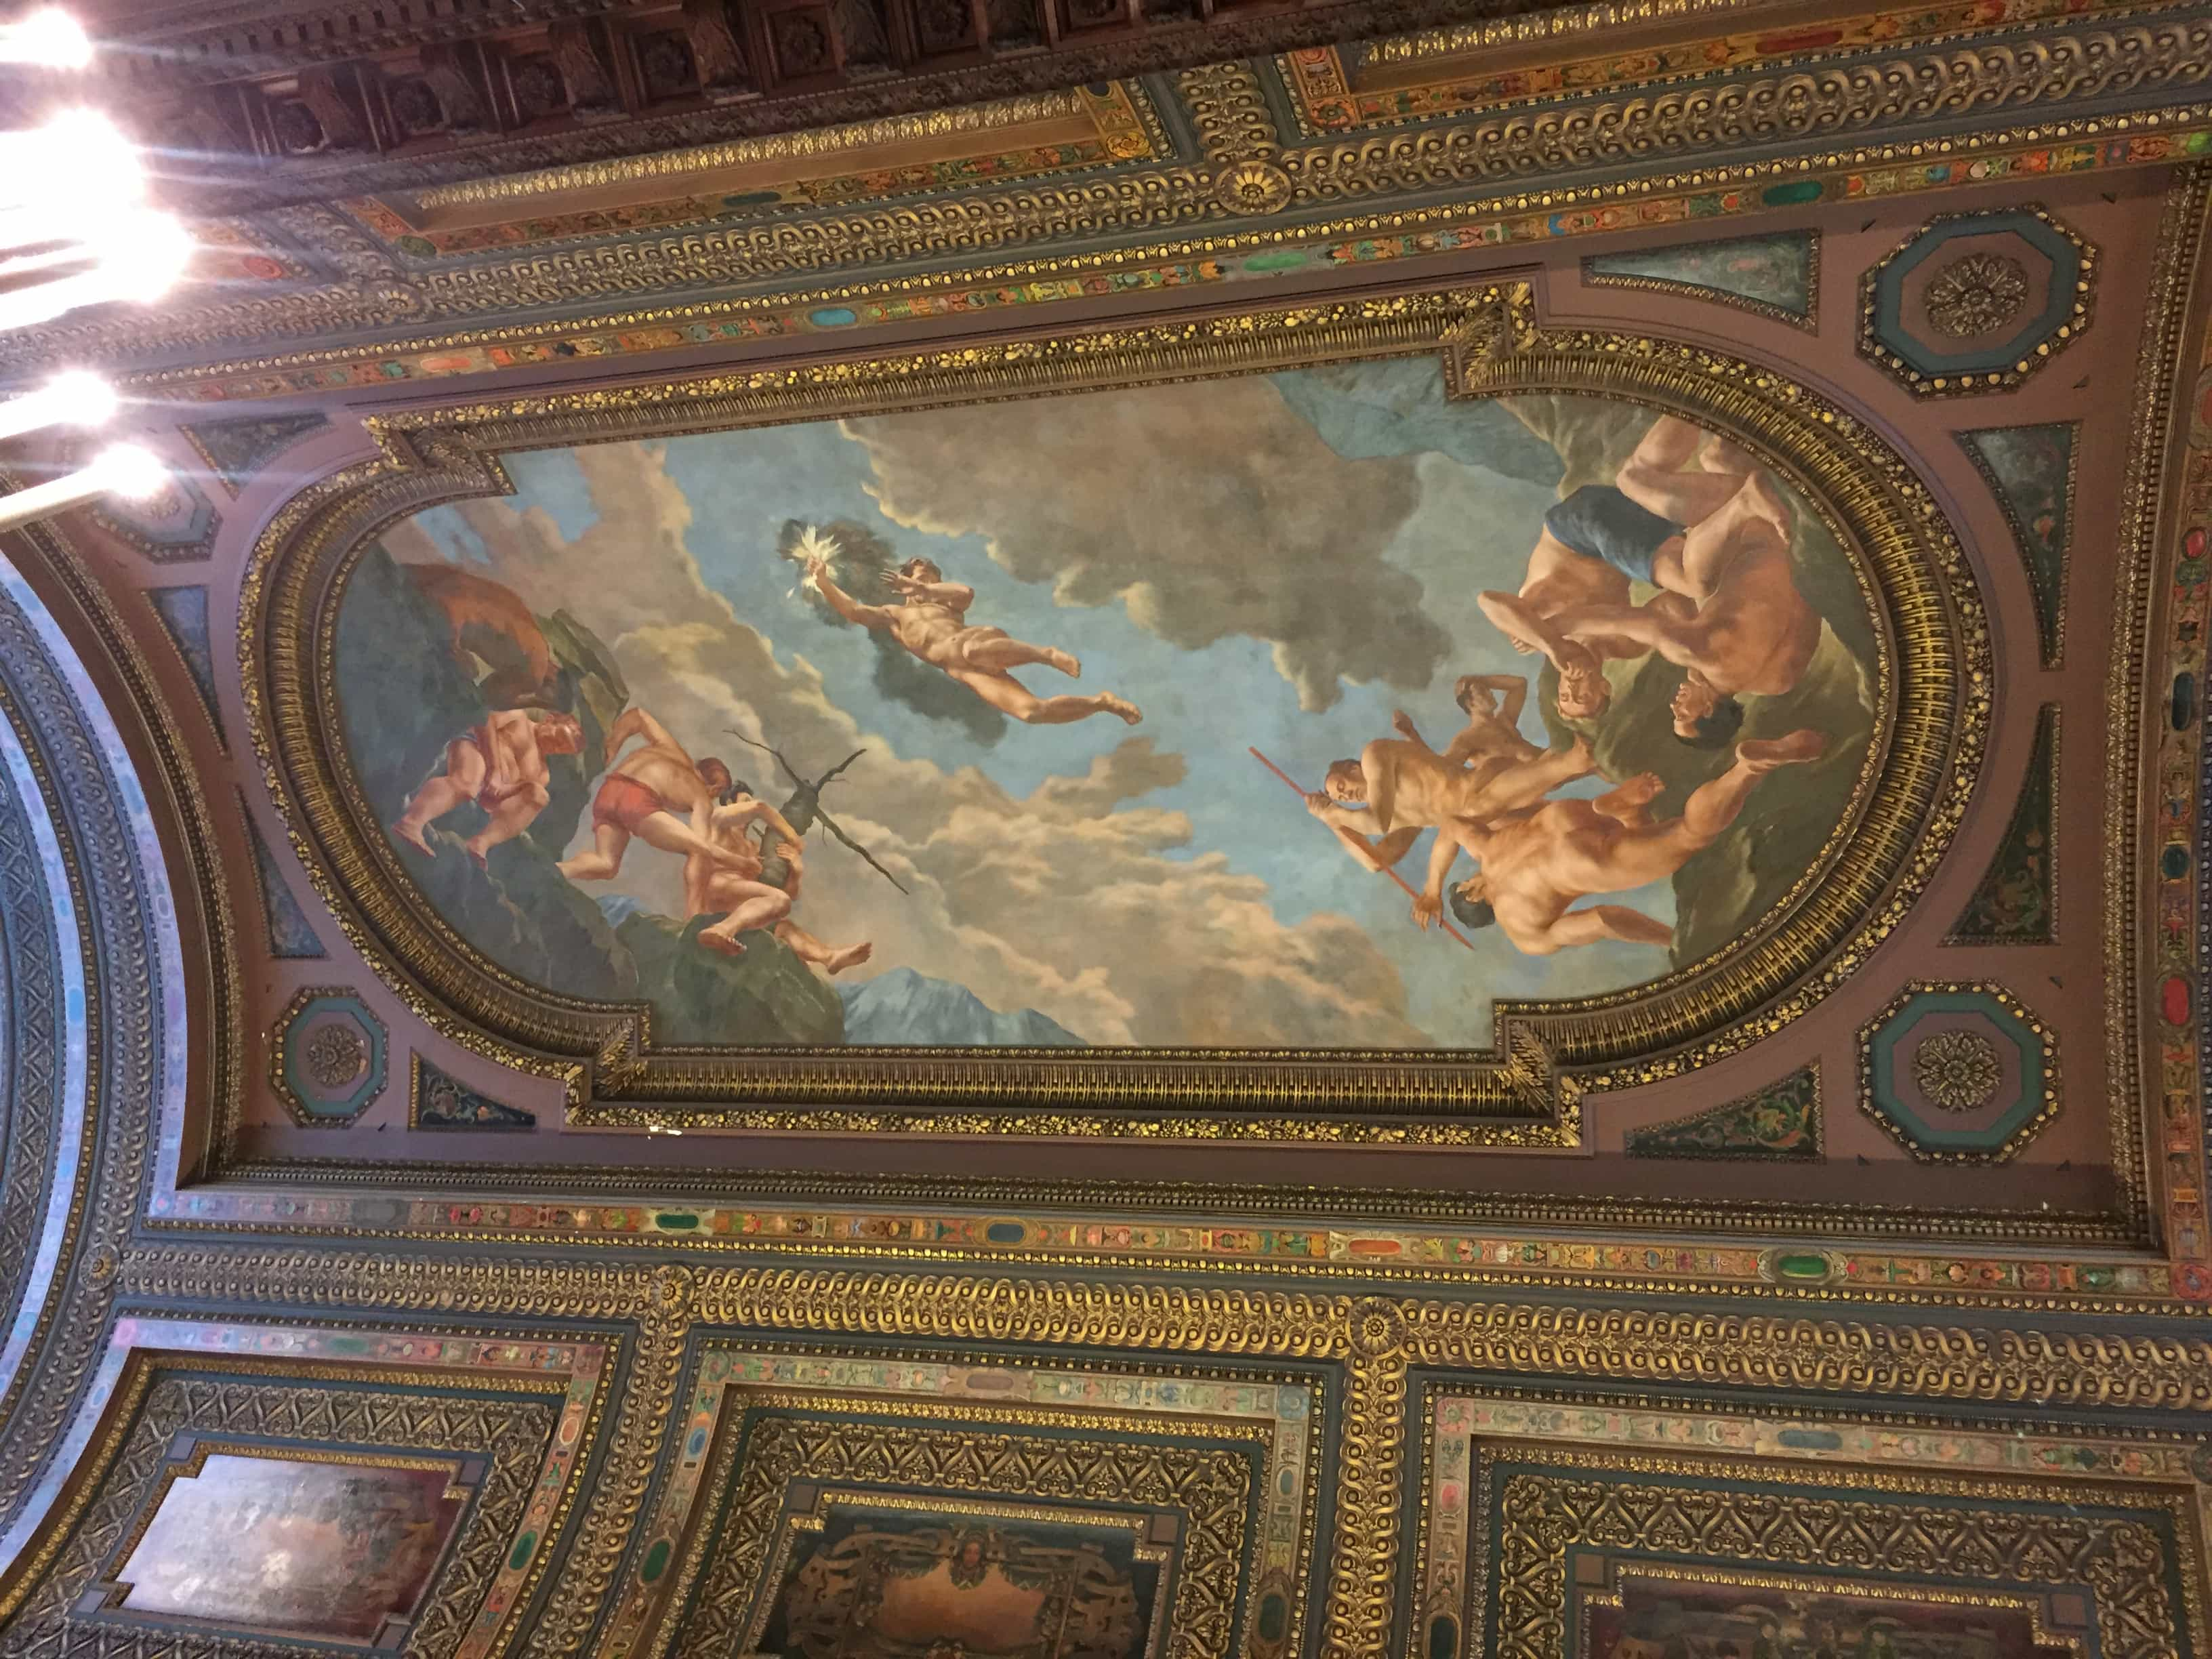 Ceiling in the New York Public Library